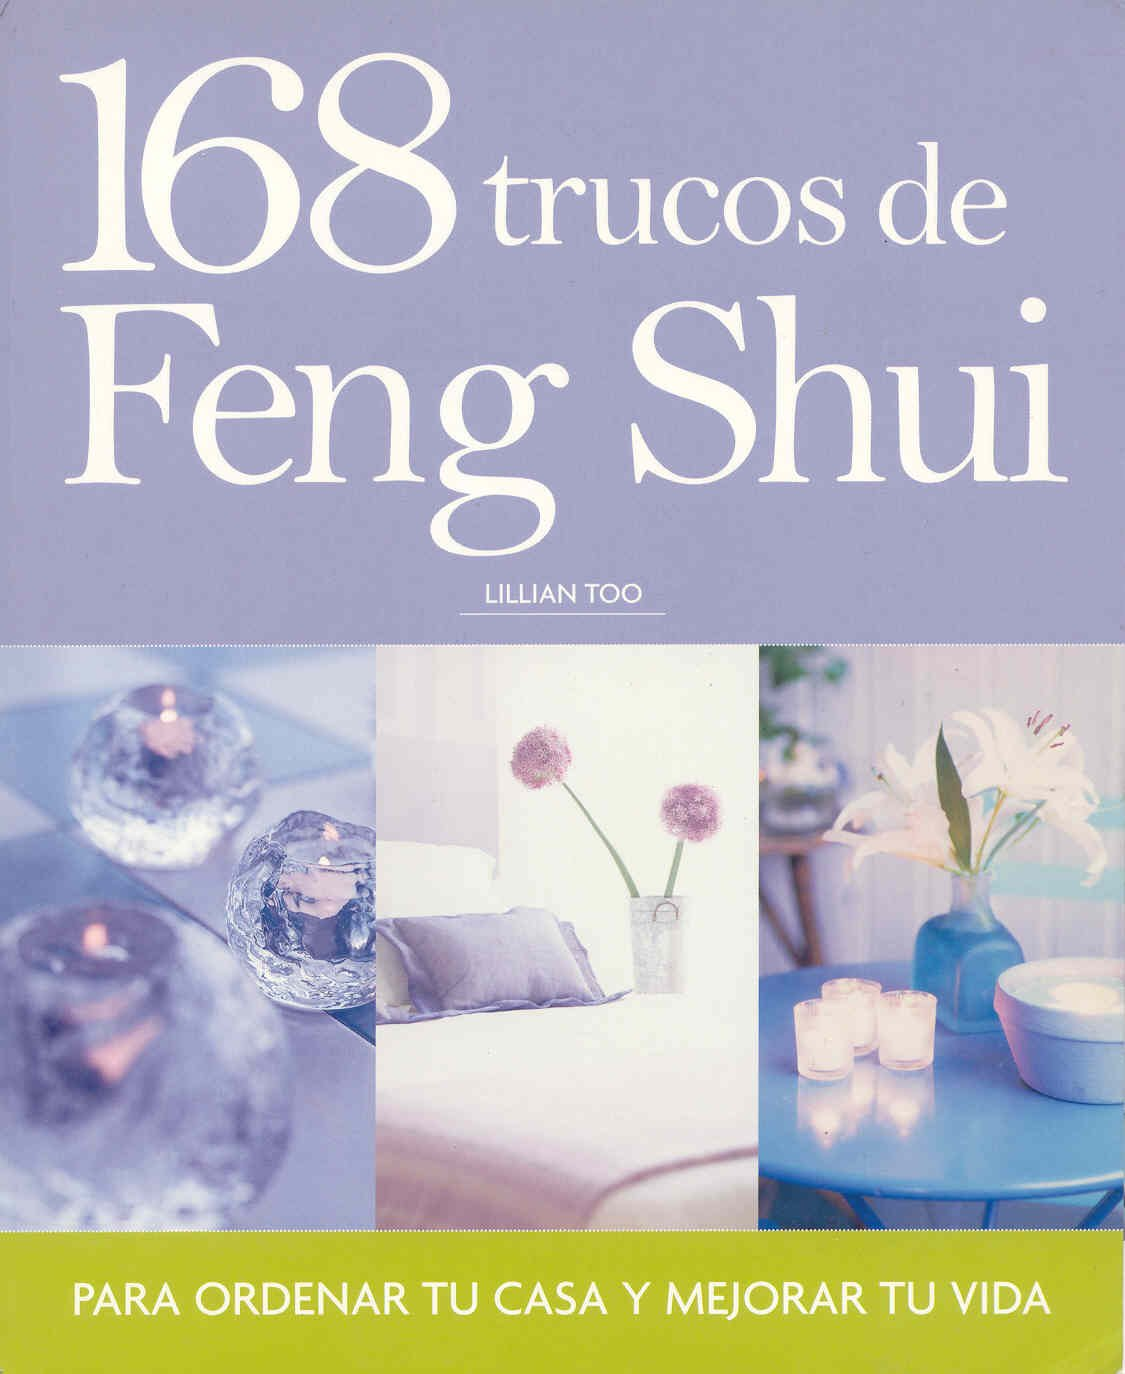 168 Trucos De Feng Shui Para Ordenar Tu Casa Y Mejorar Tu Vida/ Lillian Too's 168 Feng Shui Ways to Declutter Your Home (Spanish Edition)